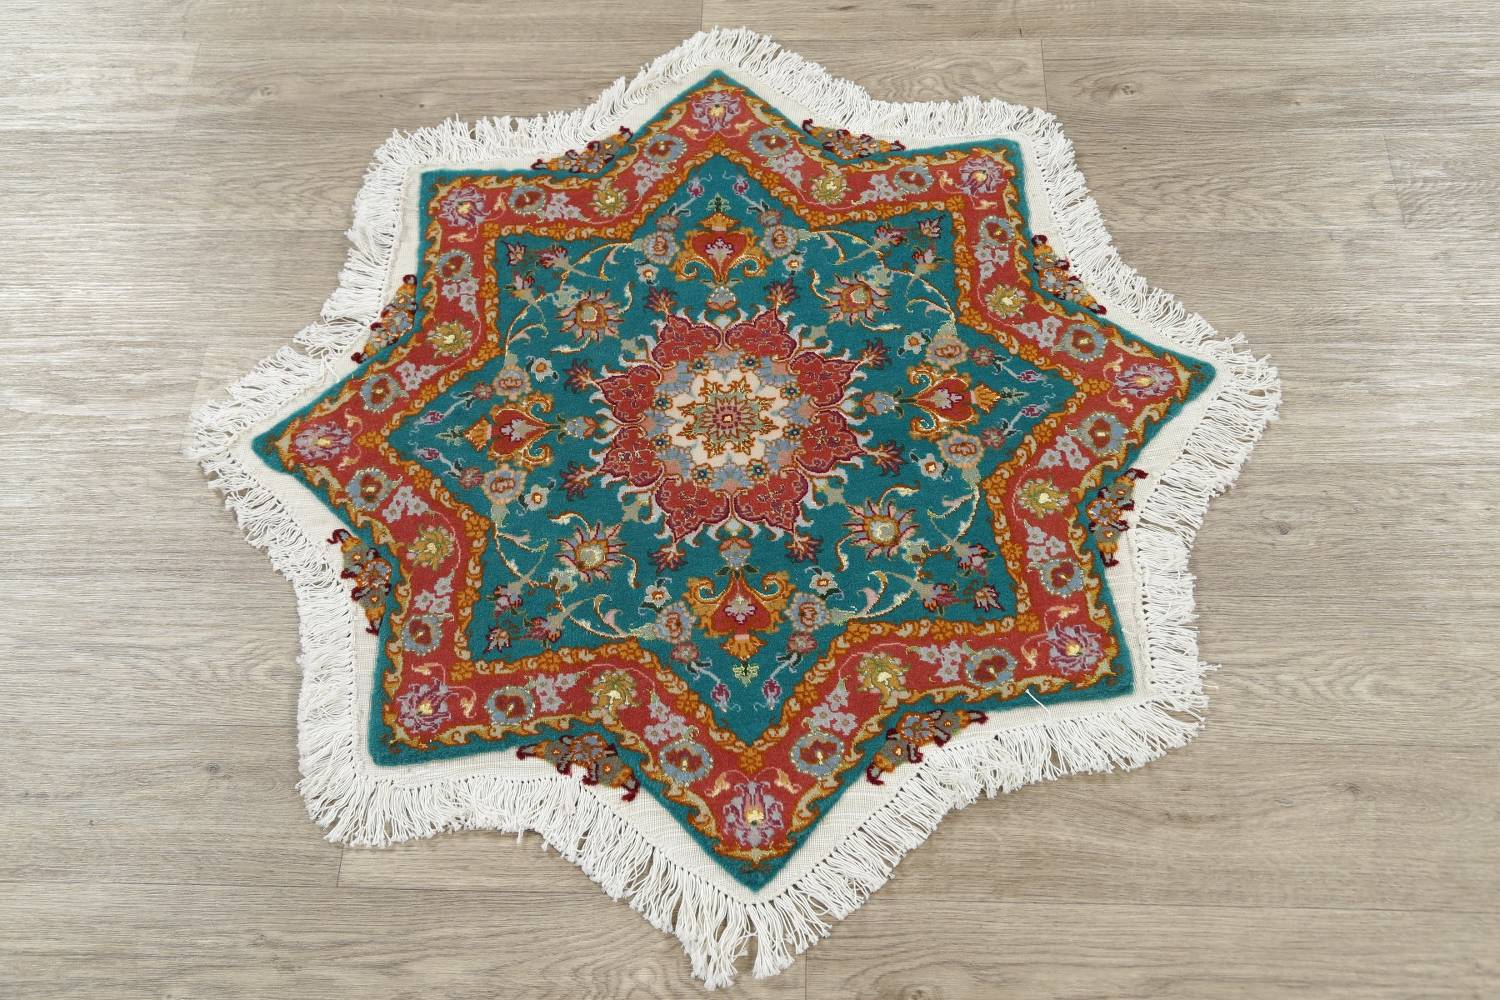 Floral Teal Tabriz Persian Hand-Knotted 3x3 Wool Silk Star Rug image 9